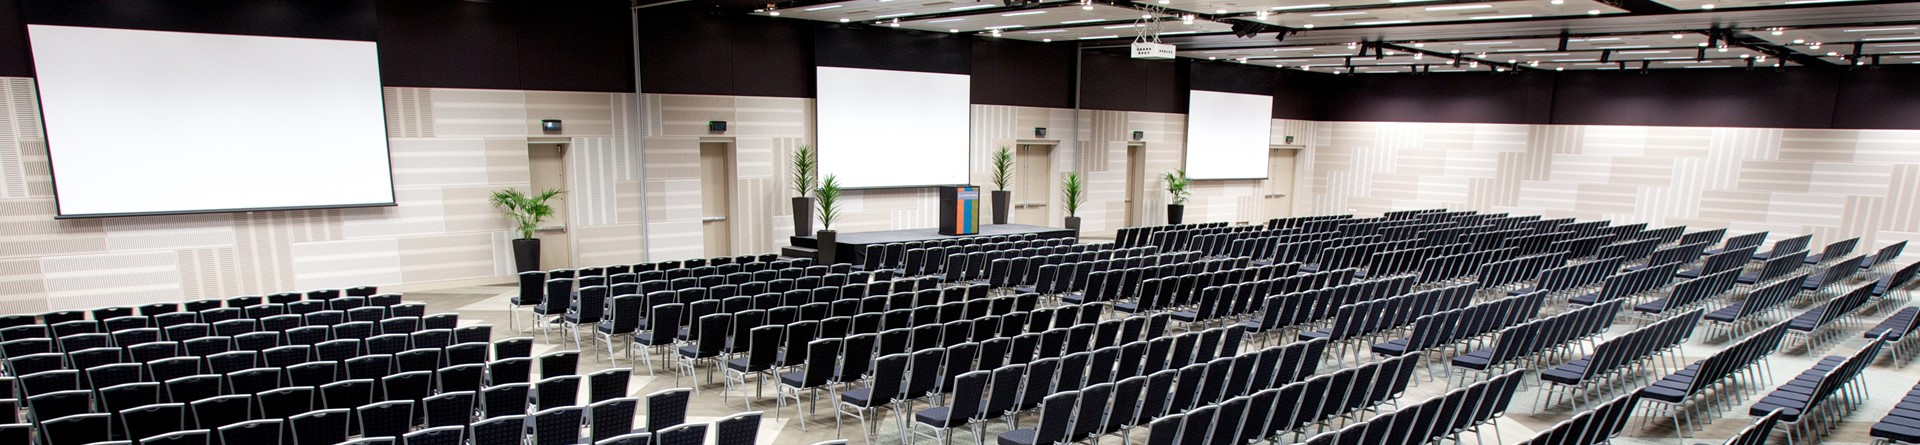 Claudelands Conference & Exhibition Centre, Heaphy Room, Hamilton, NZ.jpg